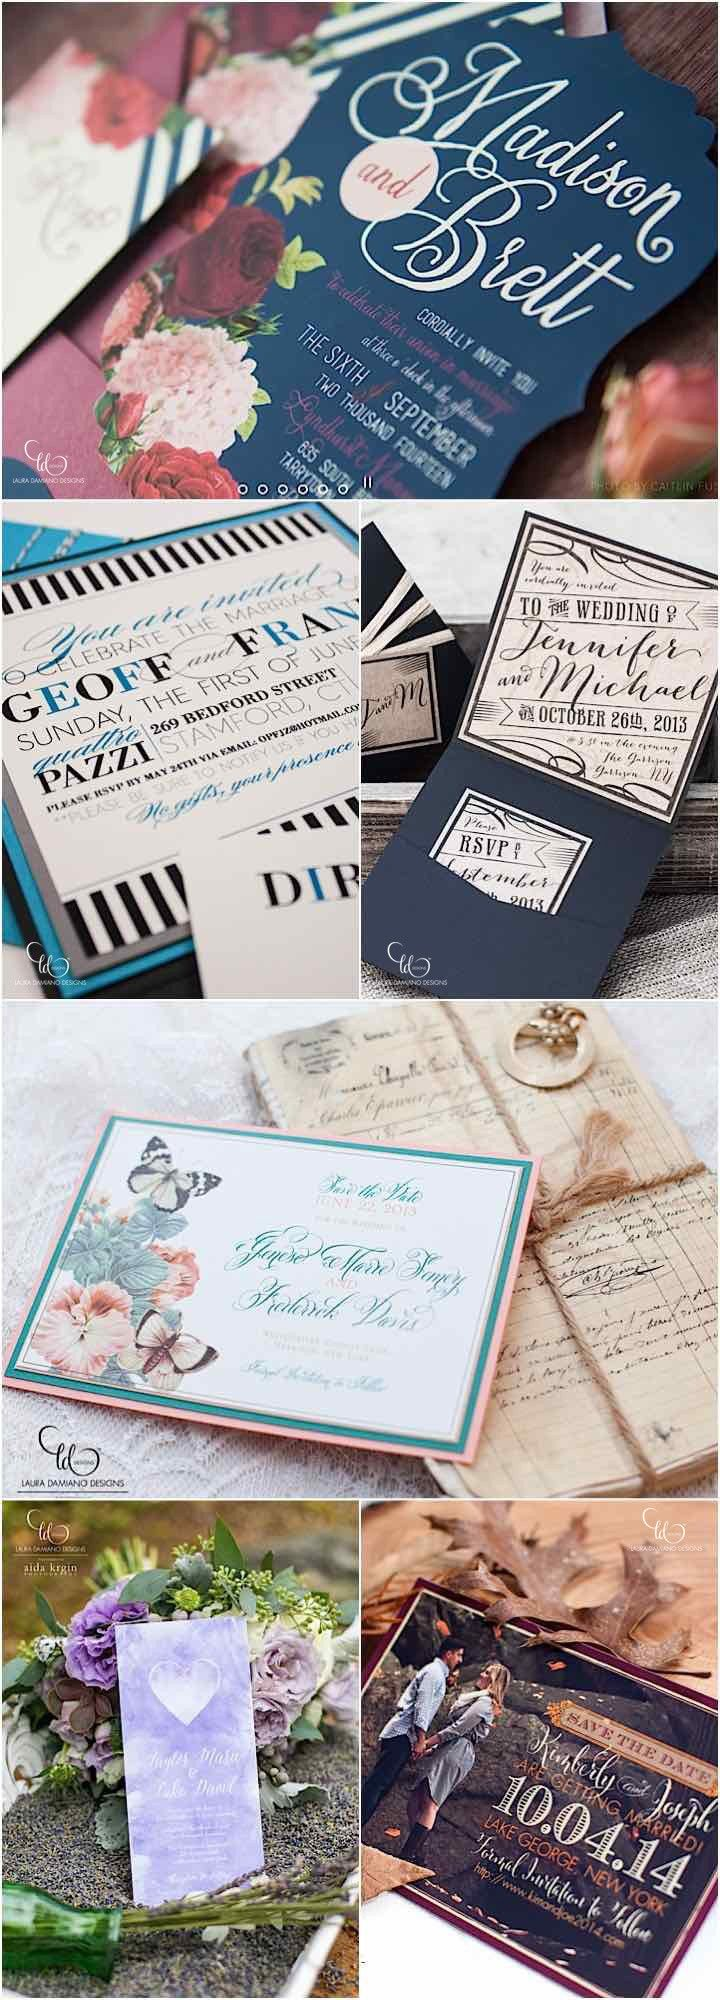 Giveaway Win 100 Wedding Invitations and RSVP